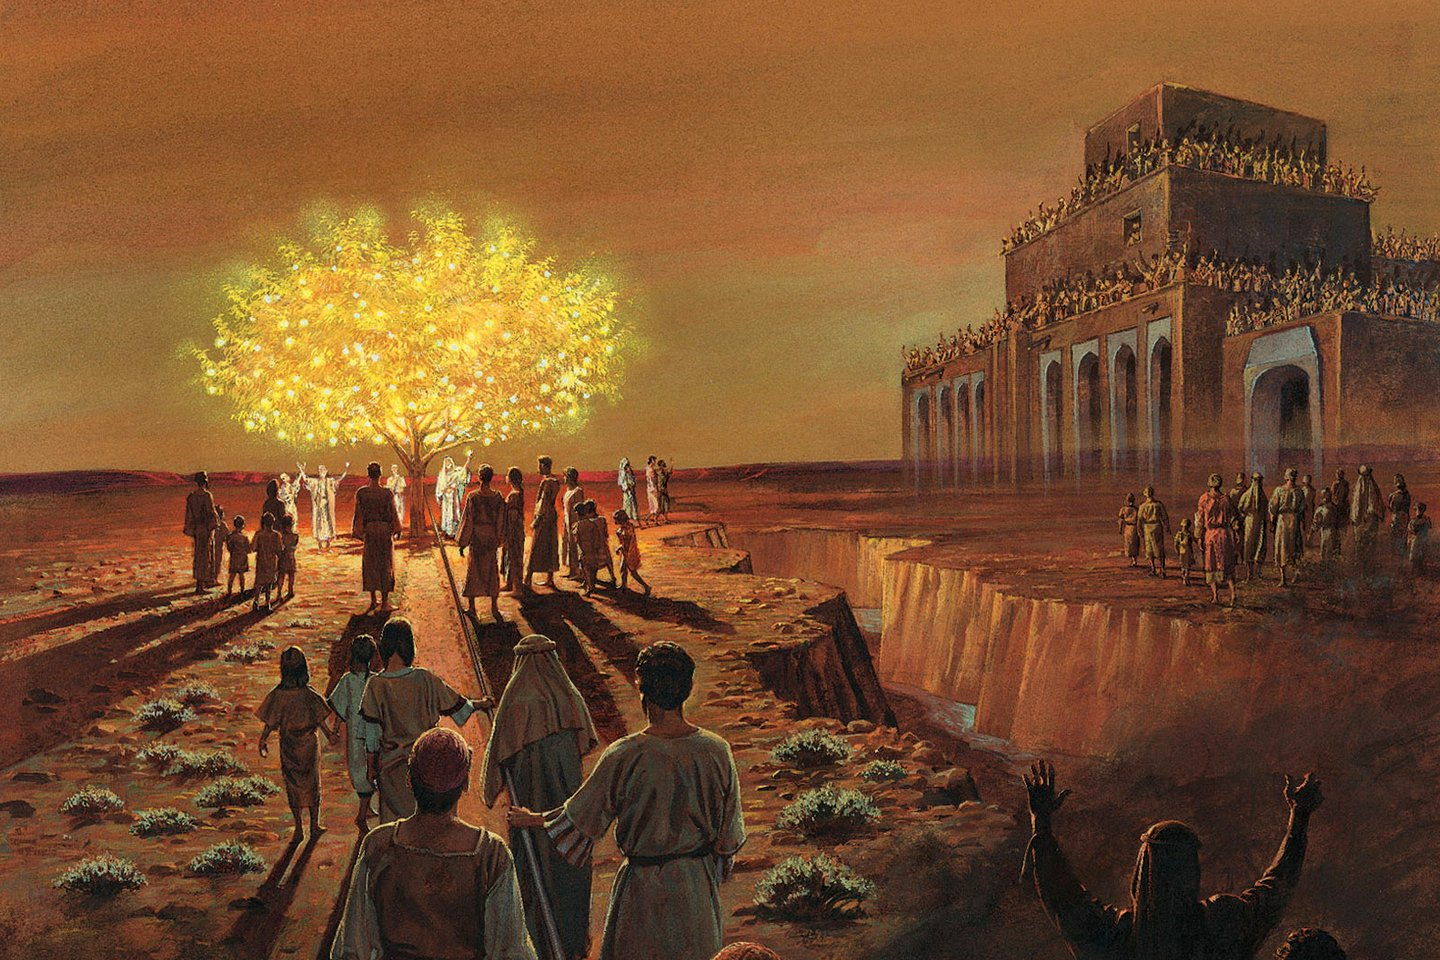 Book of Mormon Lesson 3: The Vision of the Tree of Life